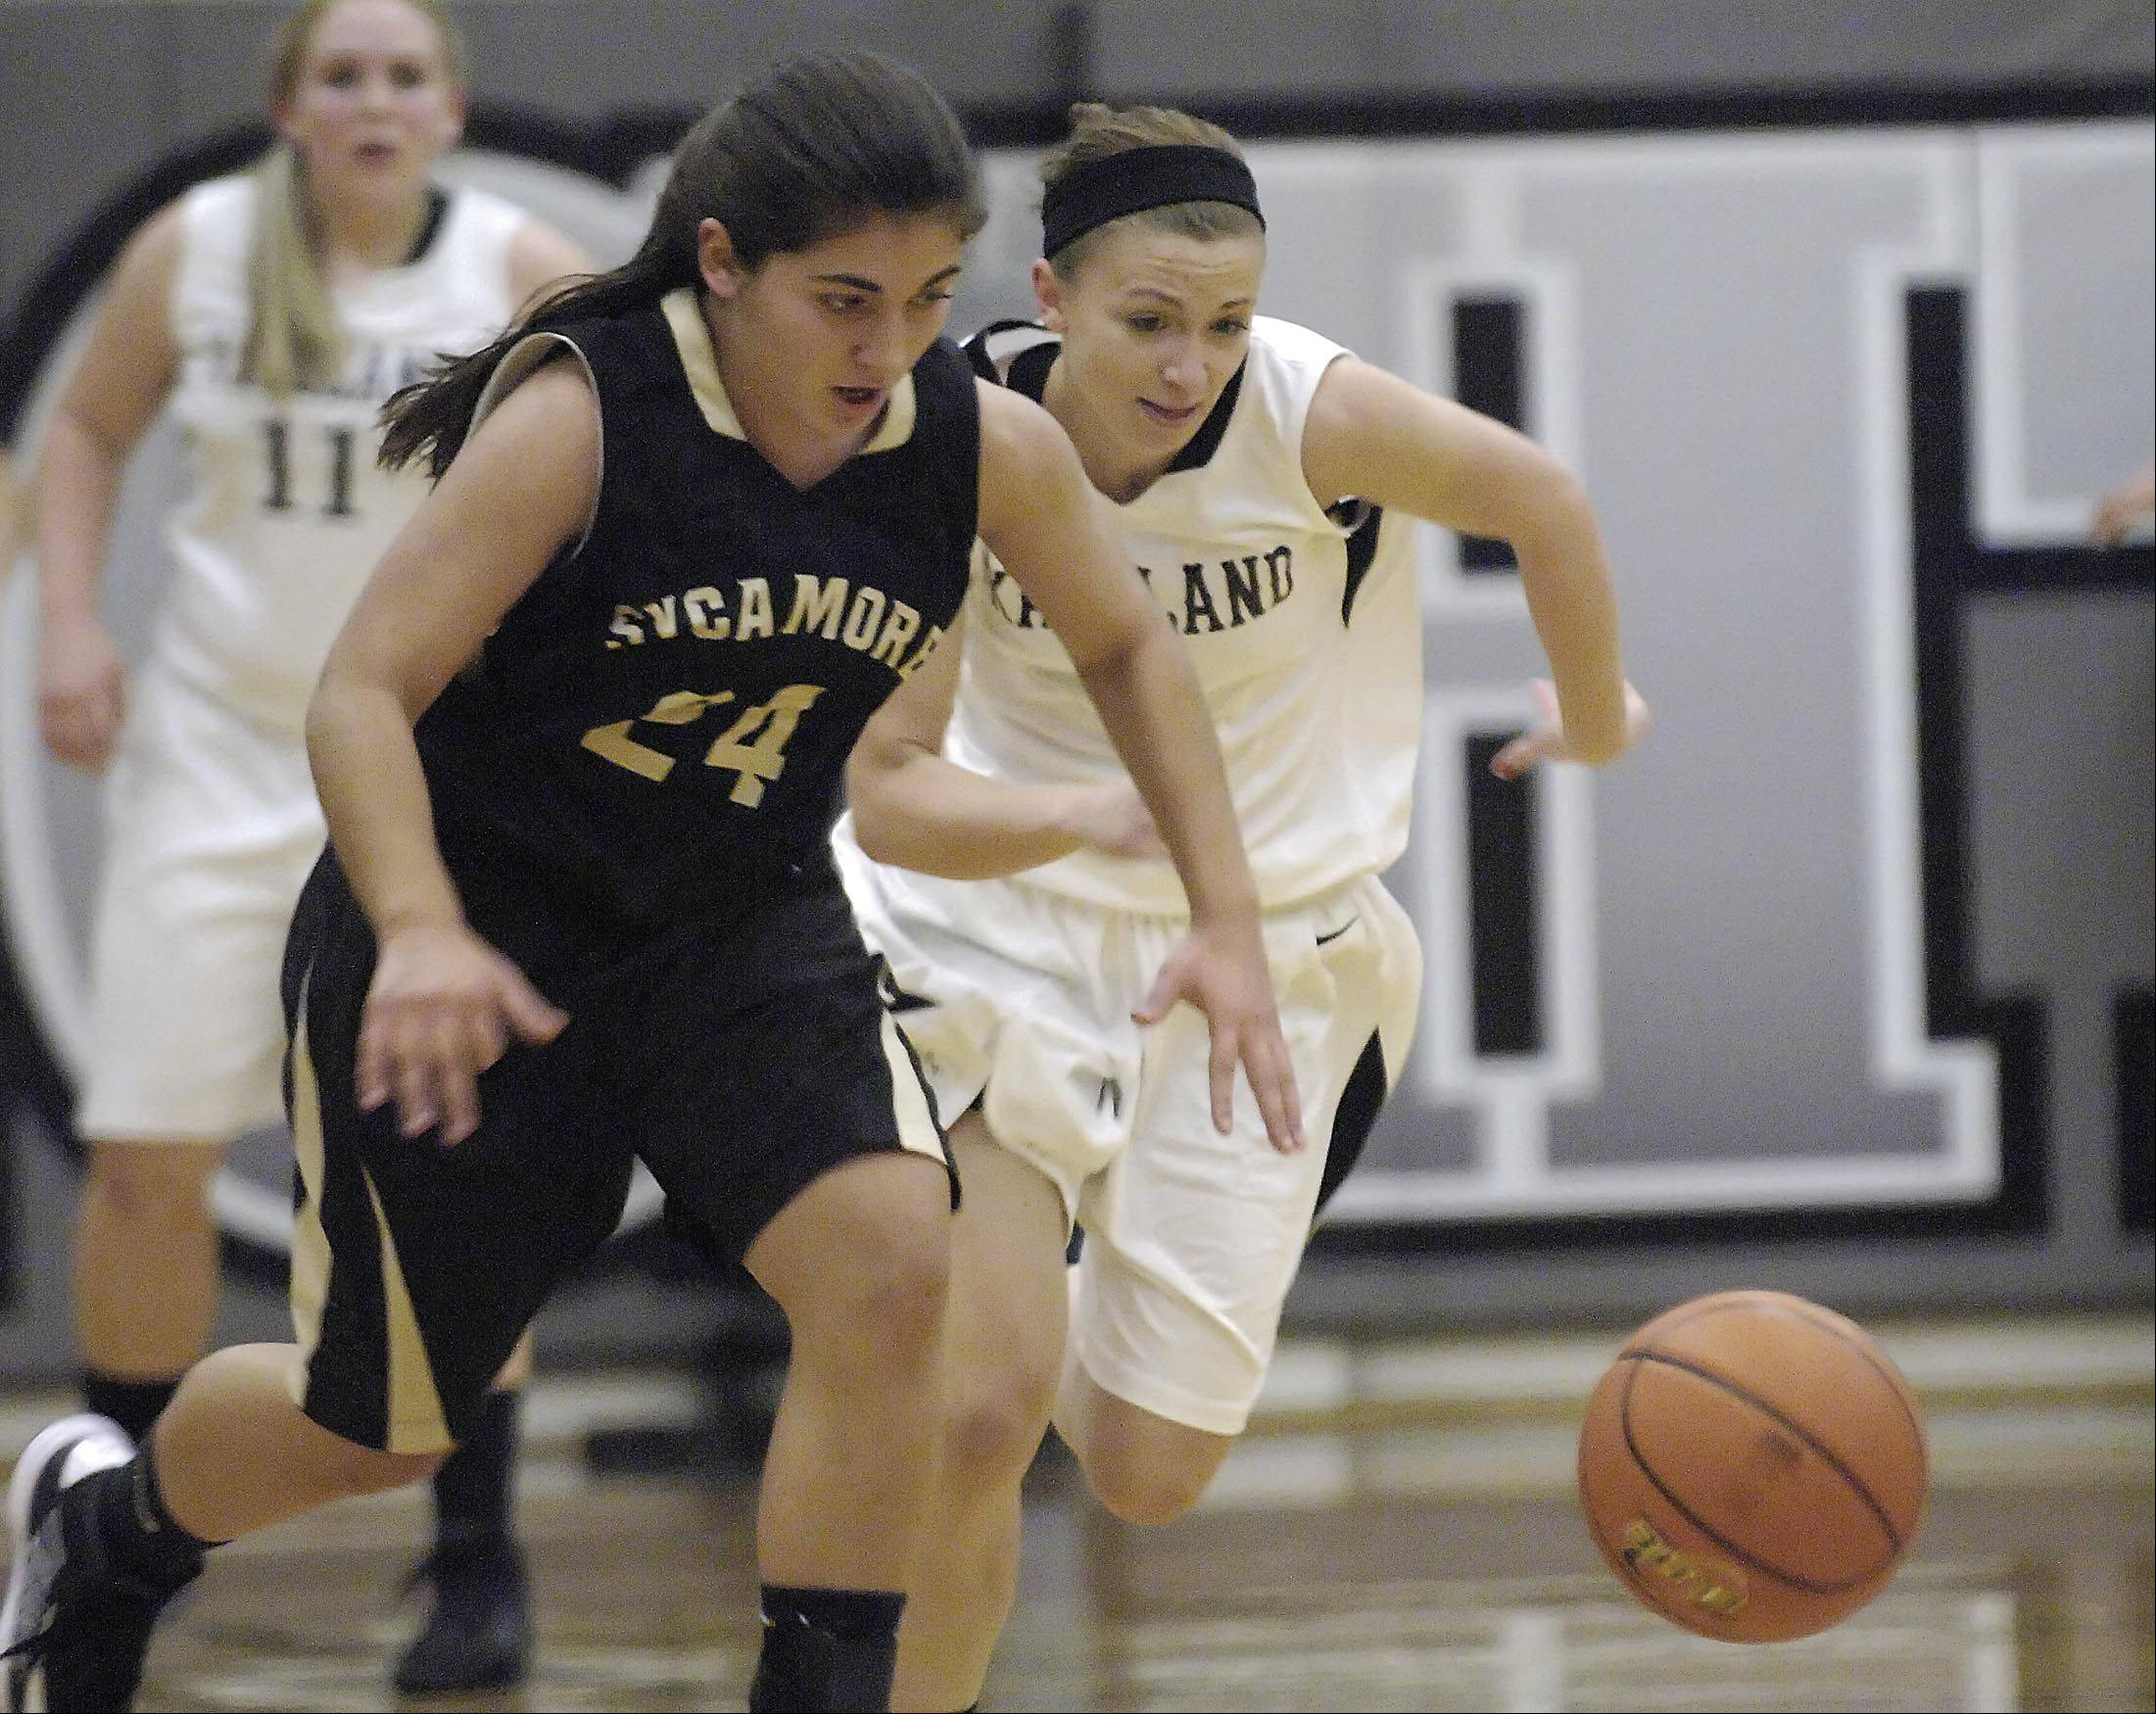 Kaneland's Caroline Heimerdinger and Sycamore's Julia Moll chase a loose ball that Heimerdinger poked away Thursday in Maple Park.